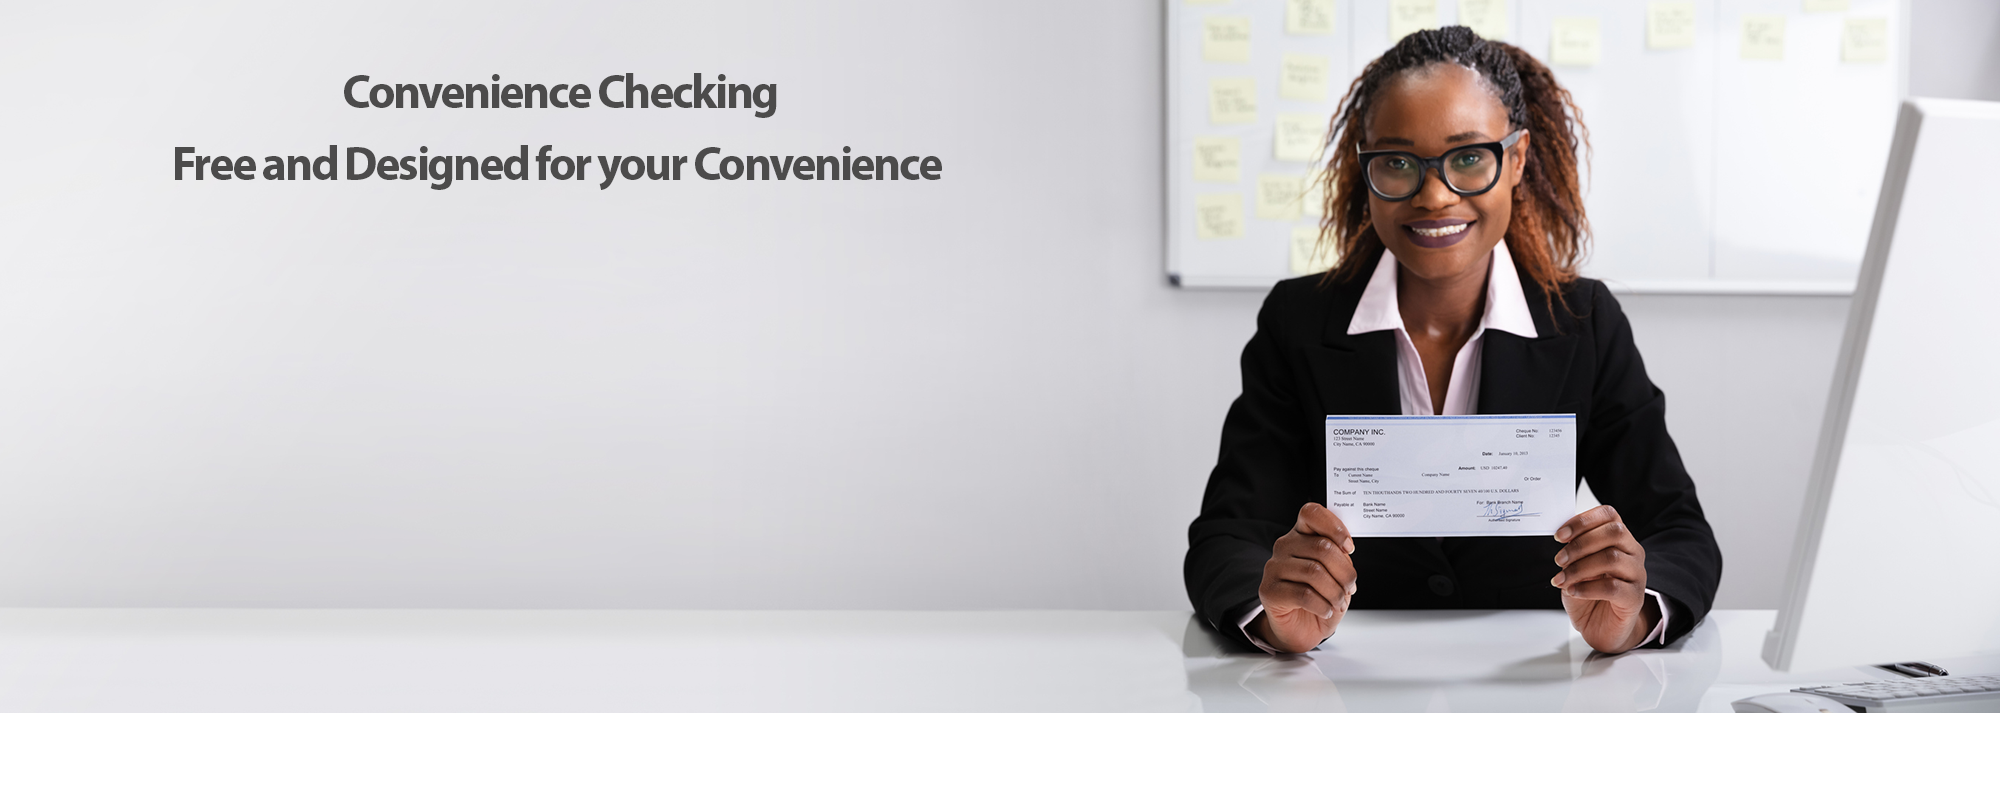 Convenience Checking